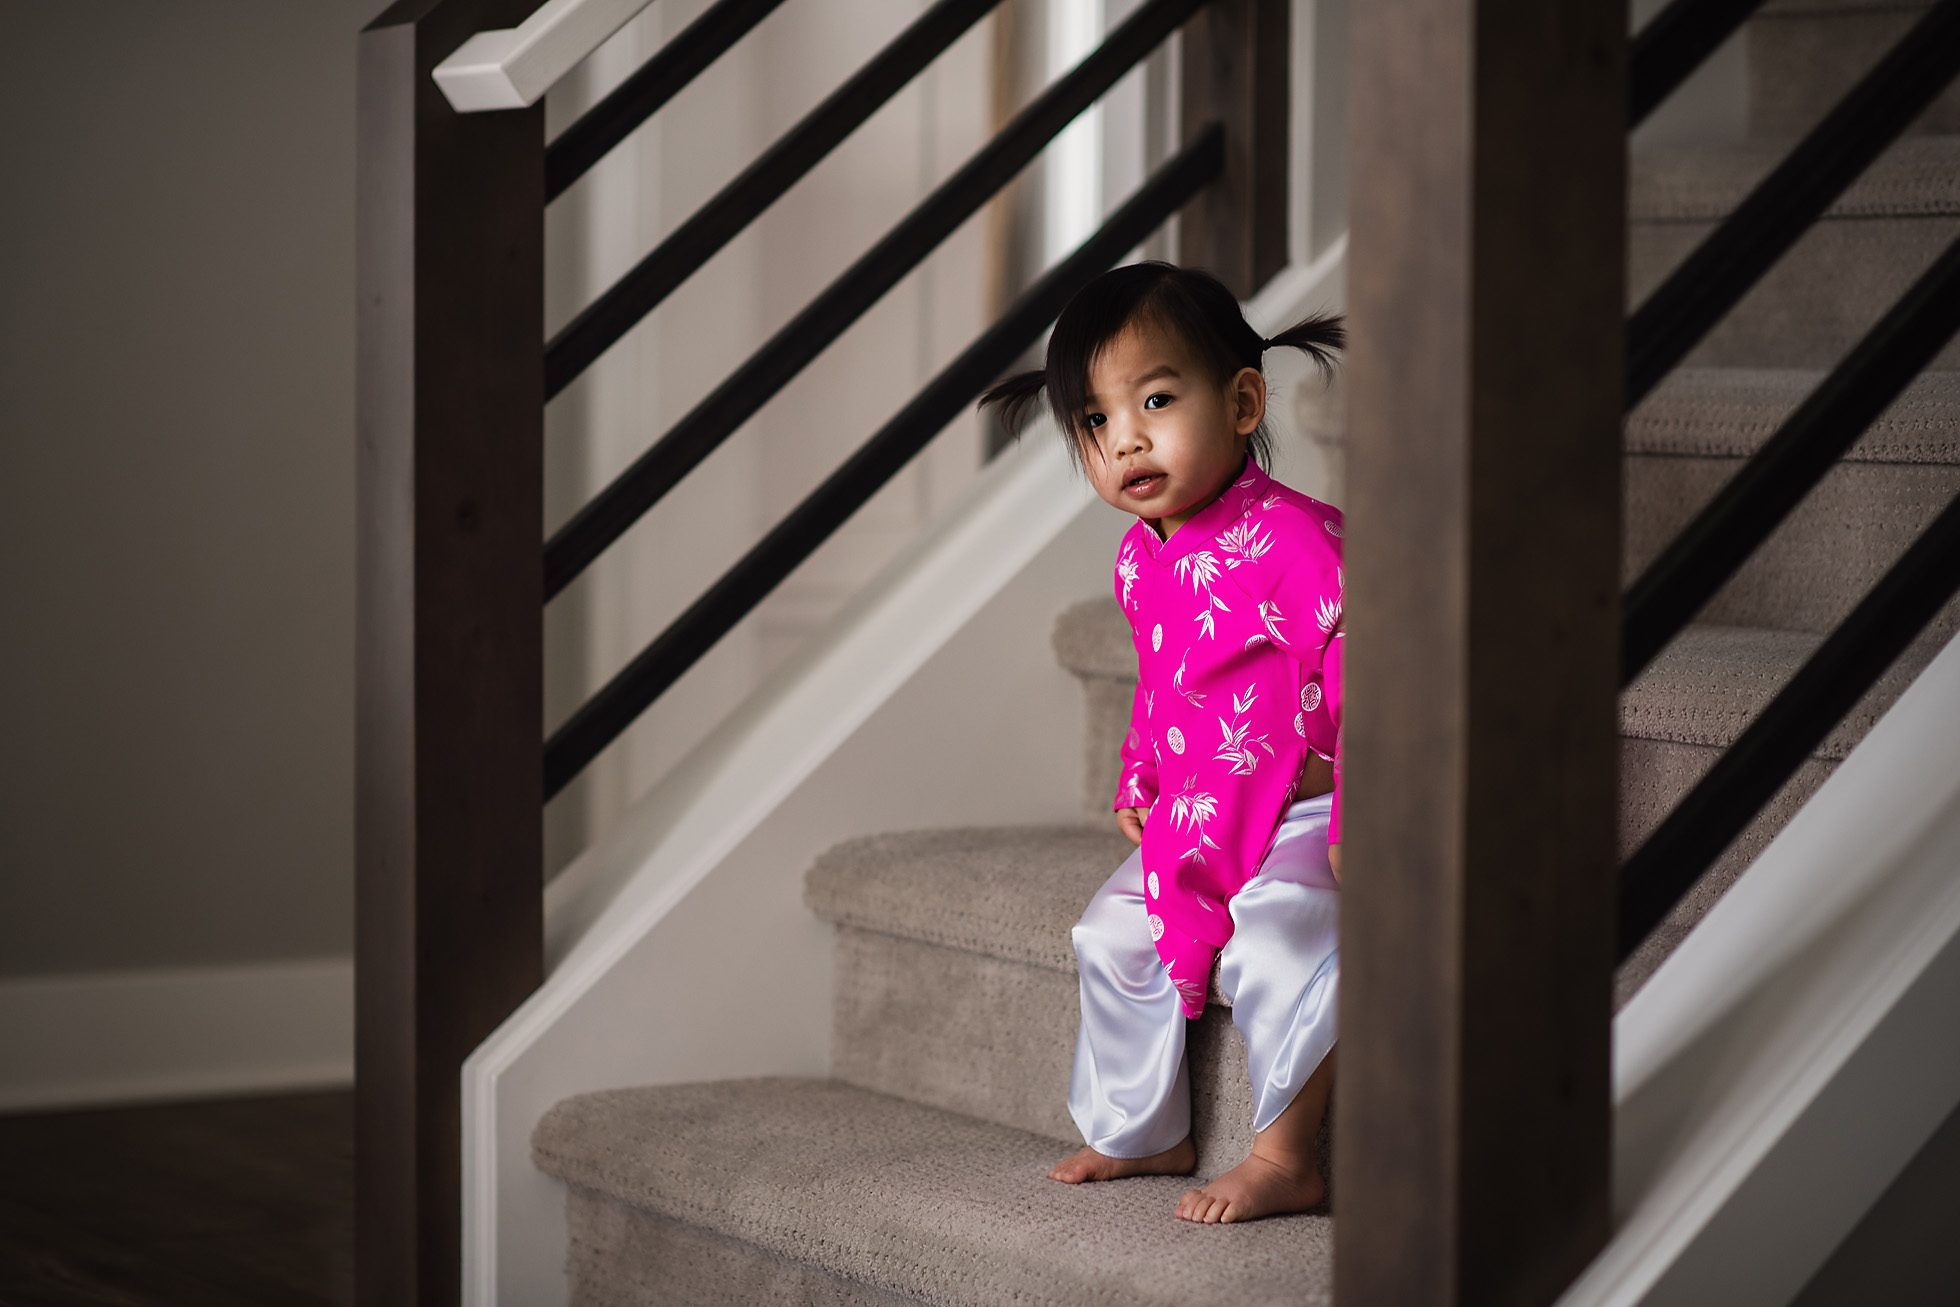 Little Toddler Vietnamese Girl in Ao Dai on the Stairs, Lifestyle photography by Thao Lai of donthaophotography.com